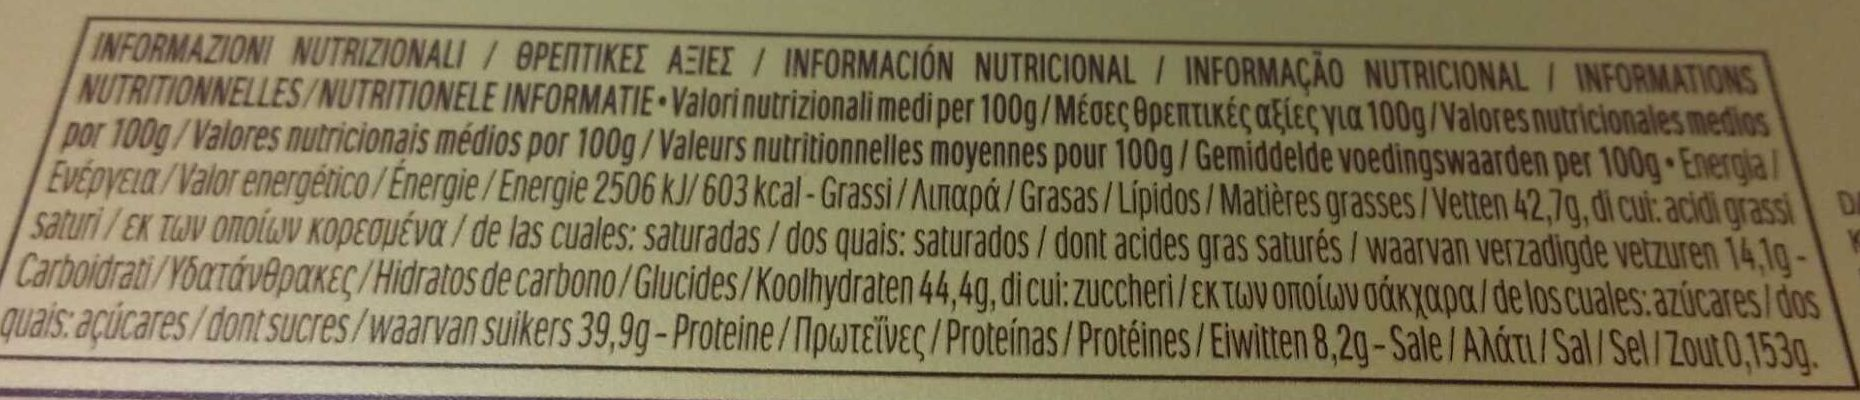 Ferrero rocher t30 boite de 30 pieces - Informazioni nutrizionali - it